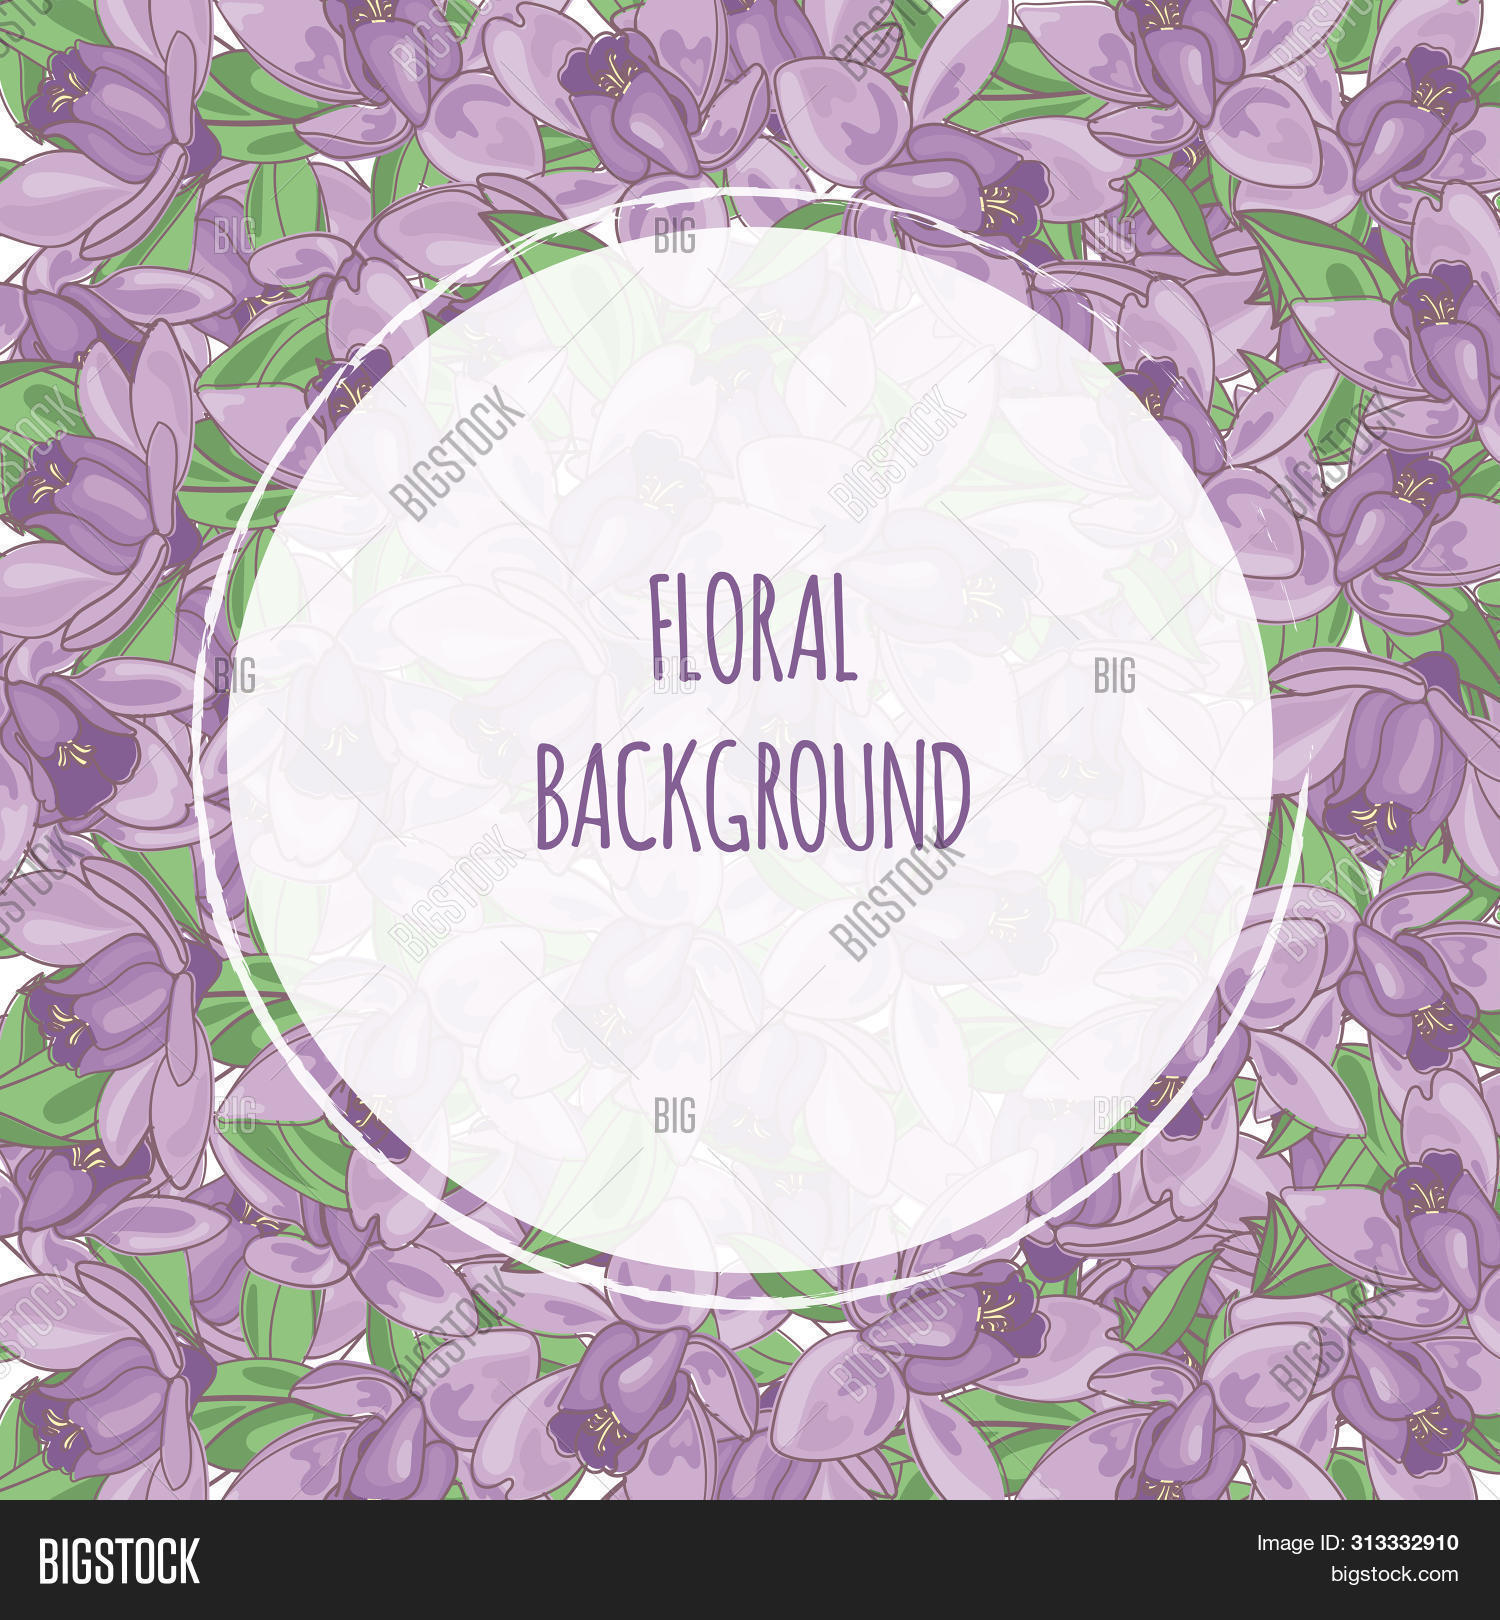 Purple Flower Floral Vector Photo Free Trial Bigstock